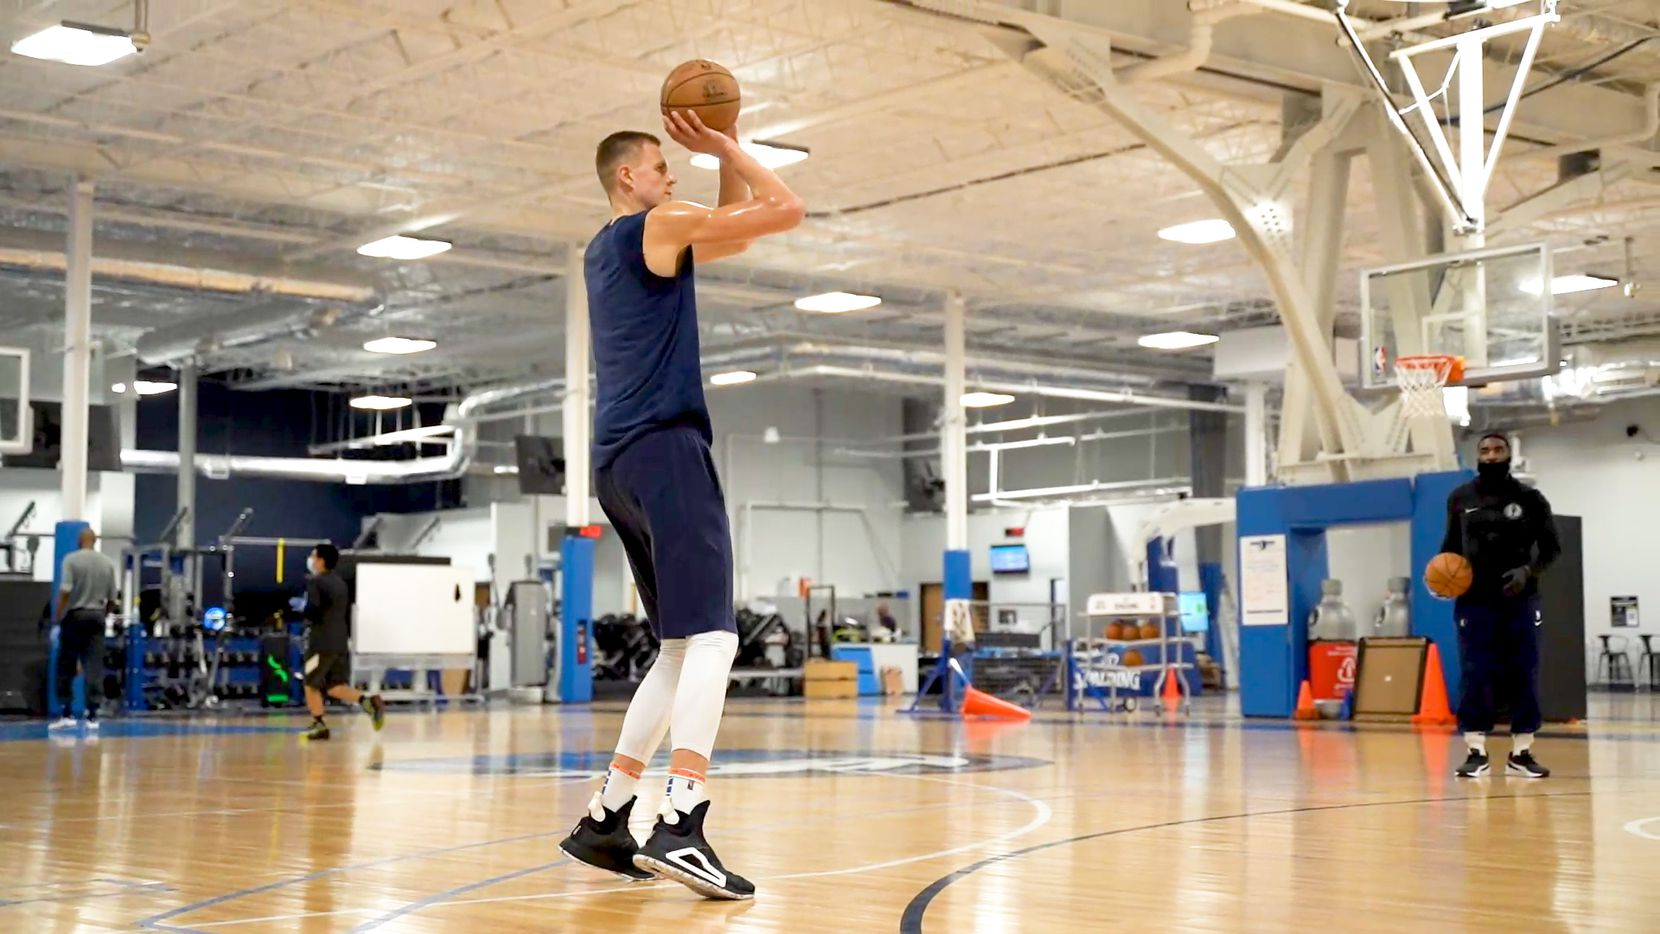 FILE - Mavericks forward Kristaps Porzingis takes some shots during a workout on July 1, 2020, when Porzingis and others played at the team's practice facility in Dallas for the first time since the coronavirus pandemic started.